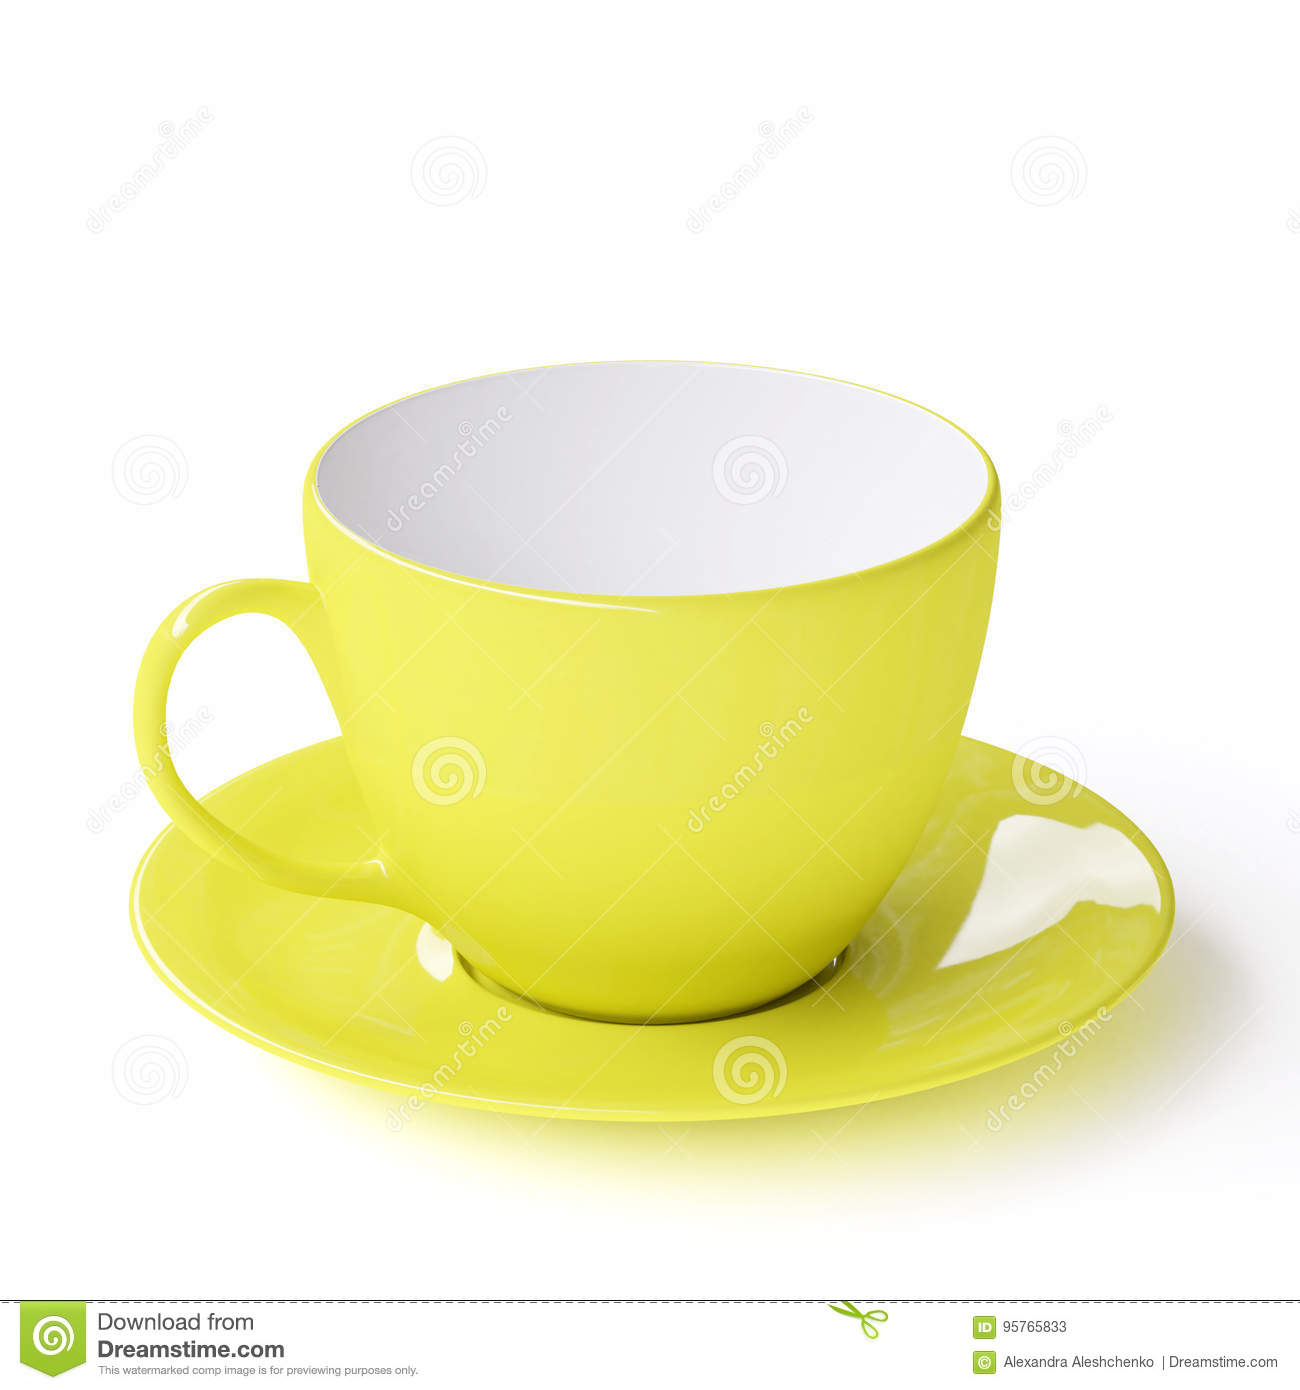 Cup with saucer stock illustration  Illustration of classic - 95765833